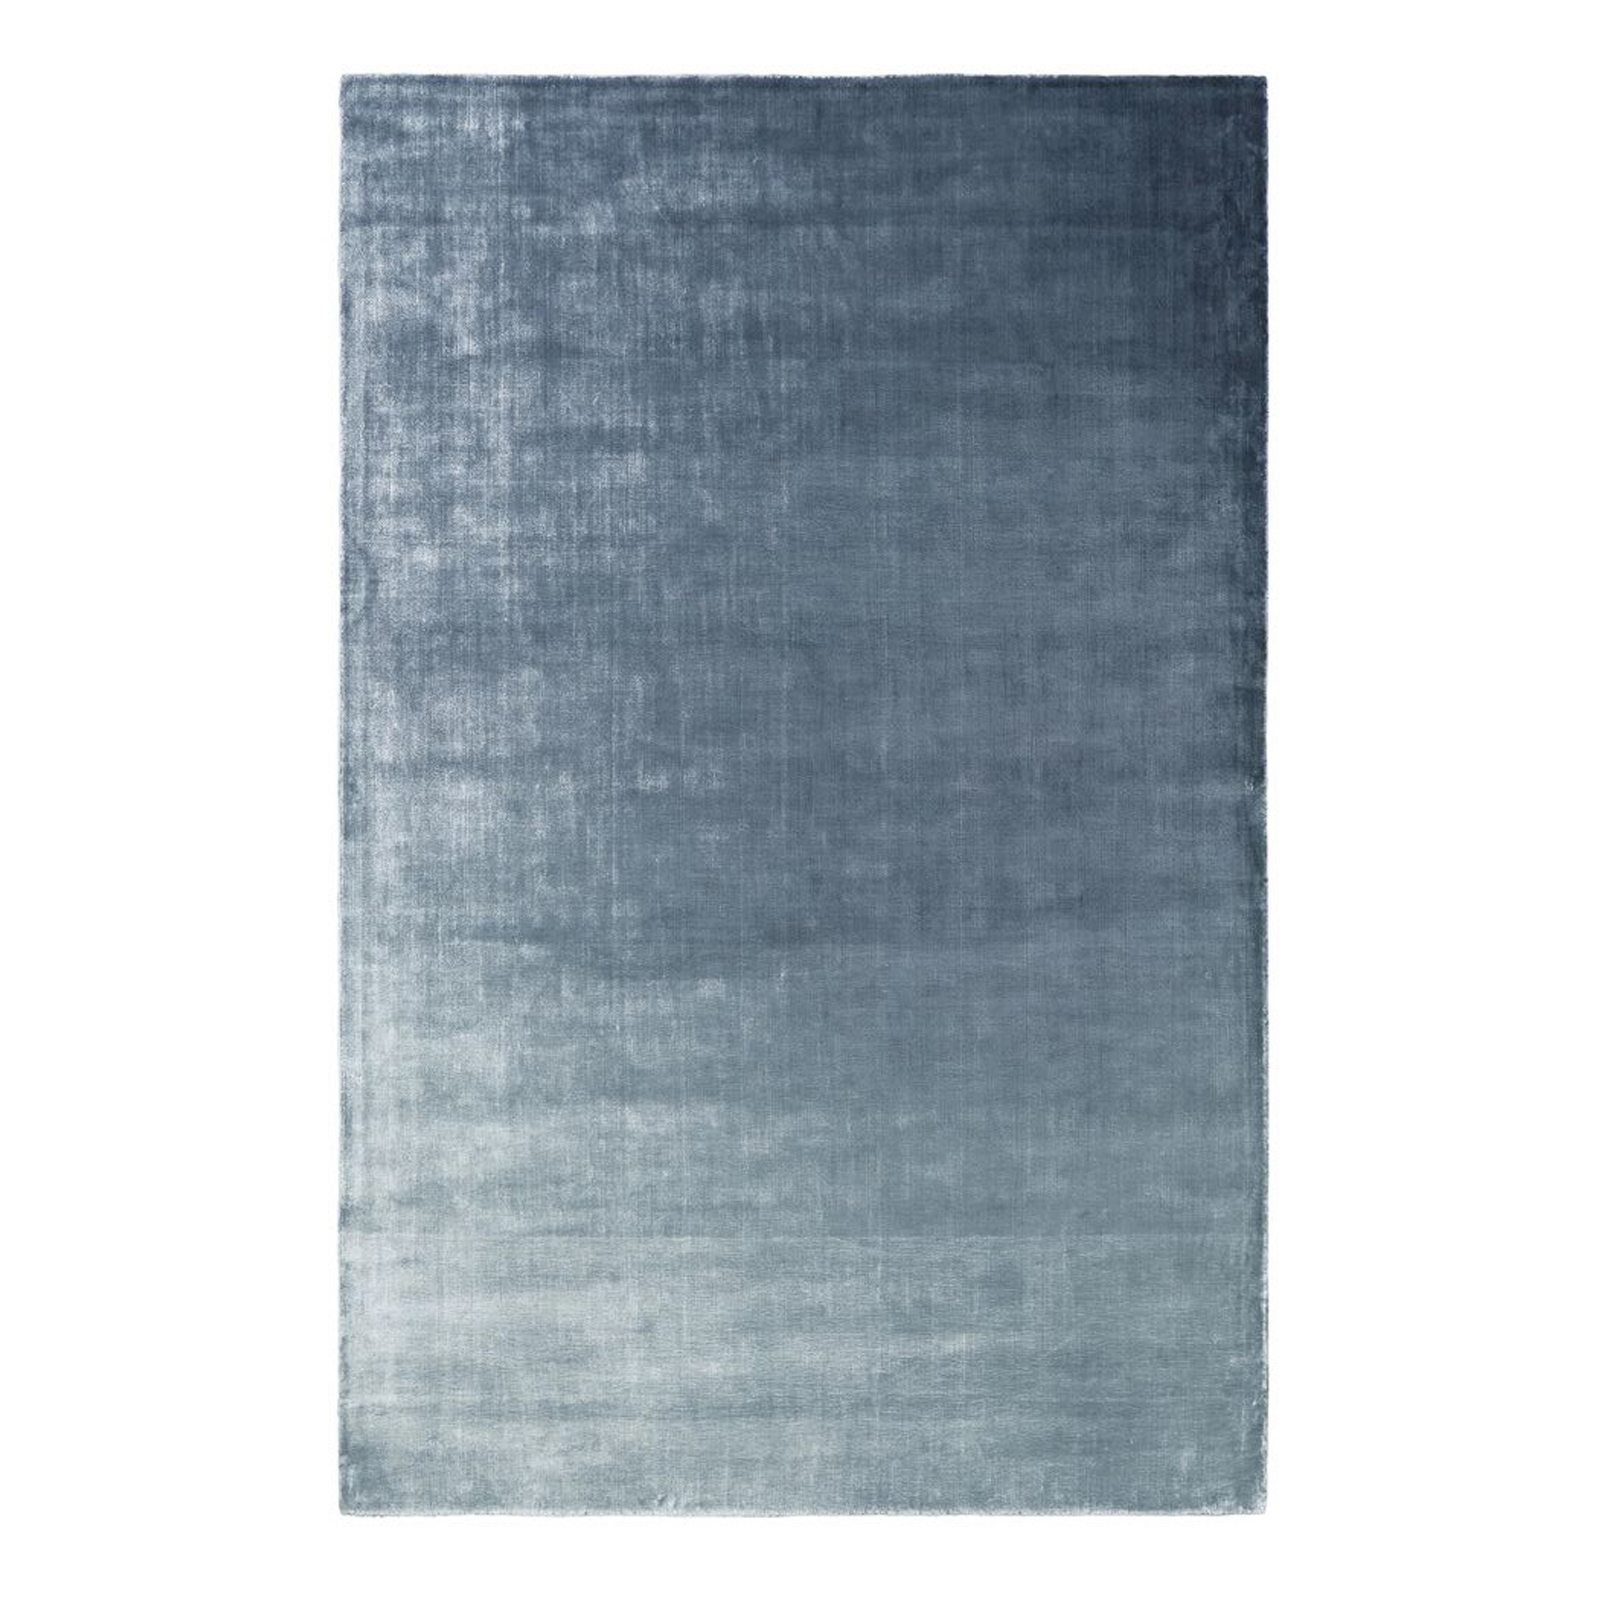 Vallance Rug by Bonham & Bonham